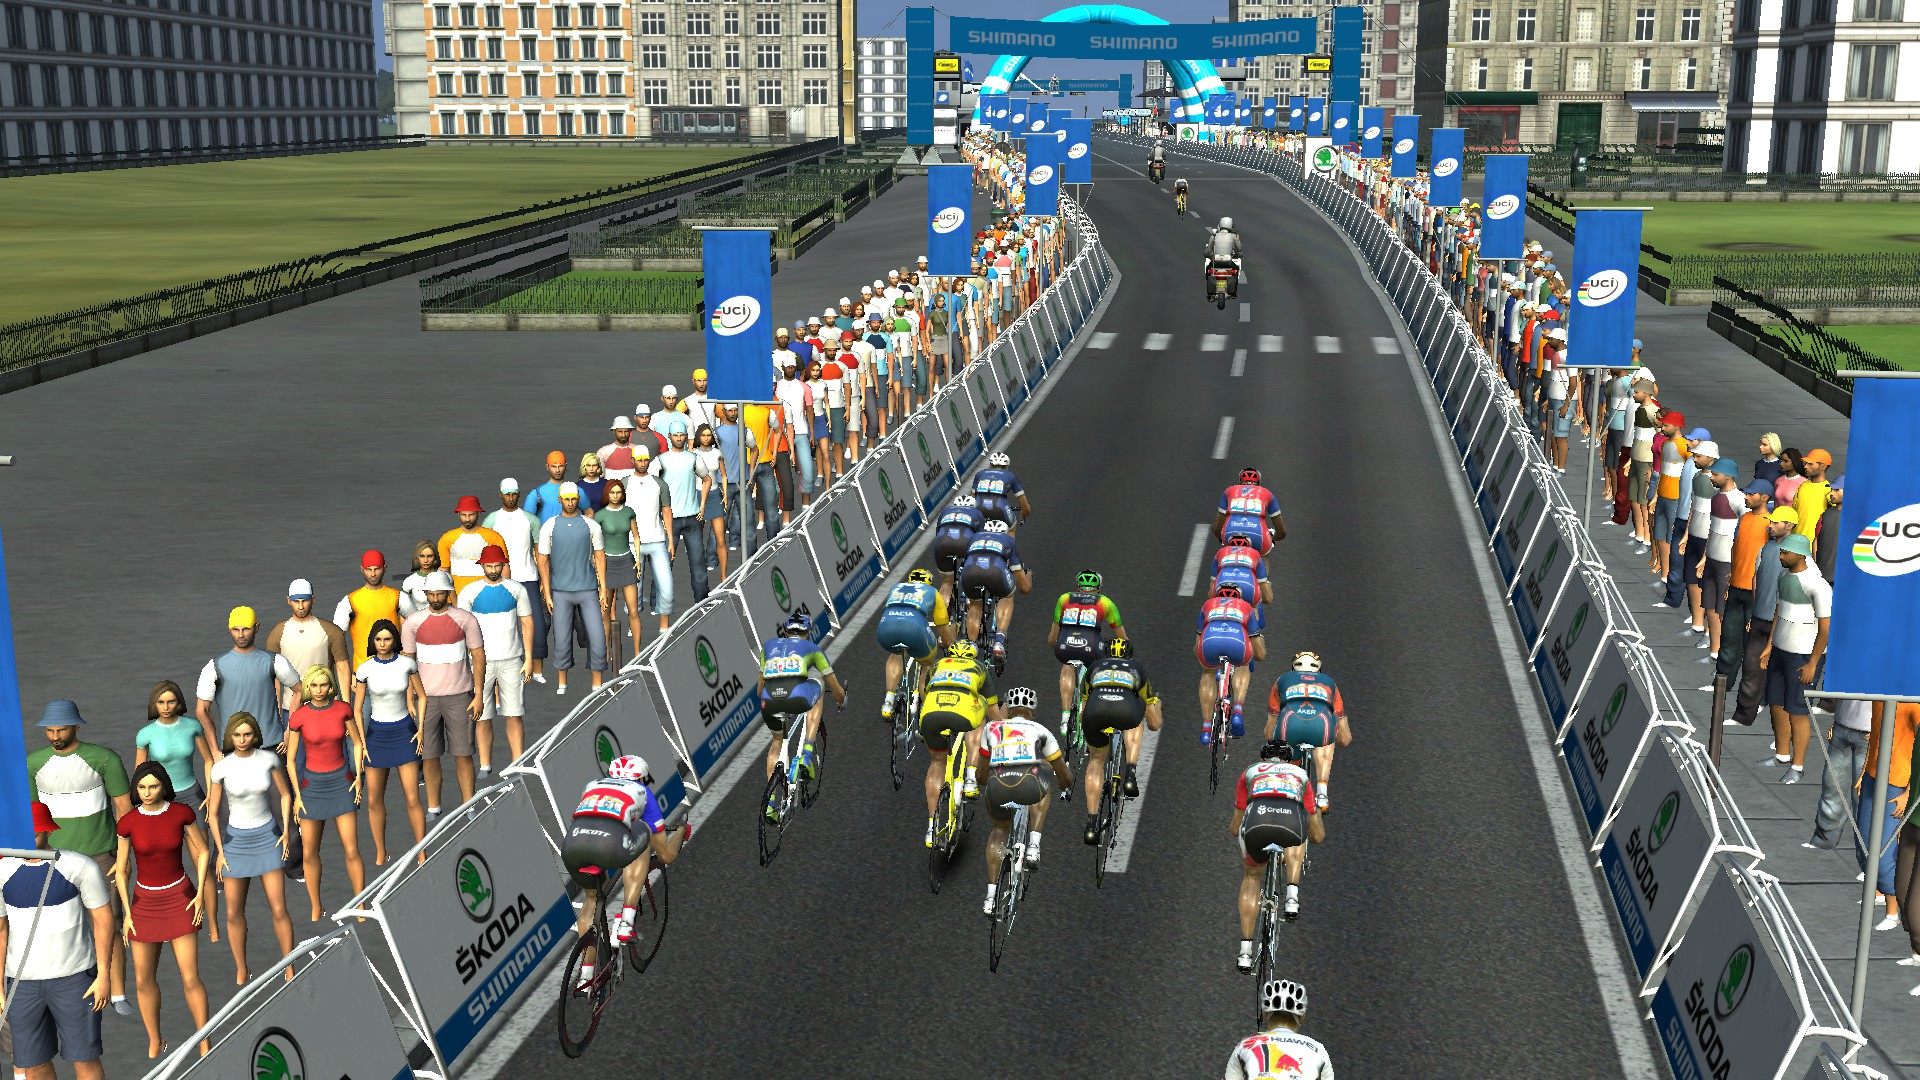 pcmdaily.com/images/mg/2016/Races/PT/Moscow/mos10.jpg